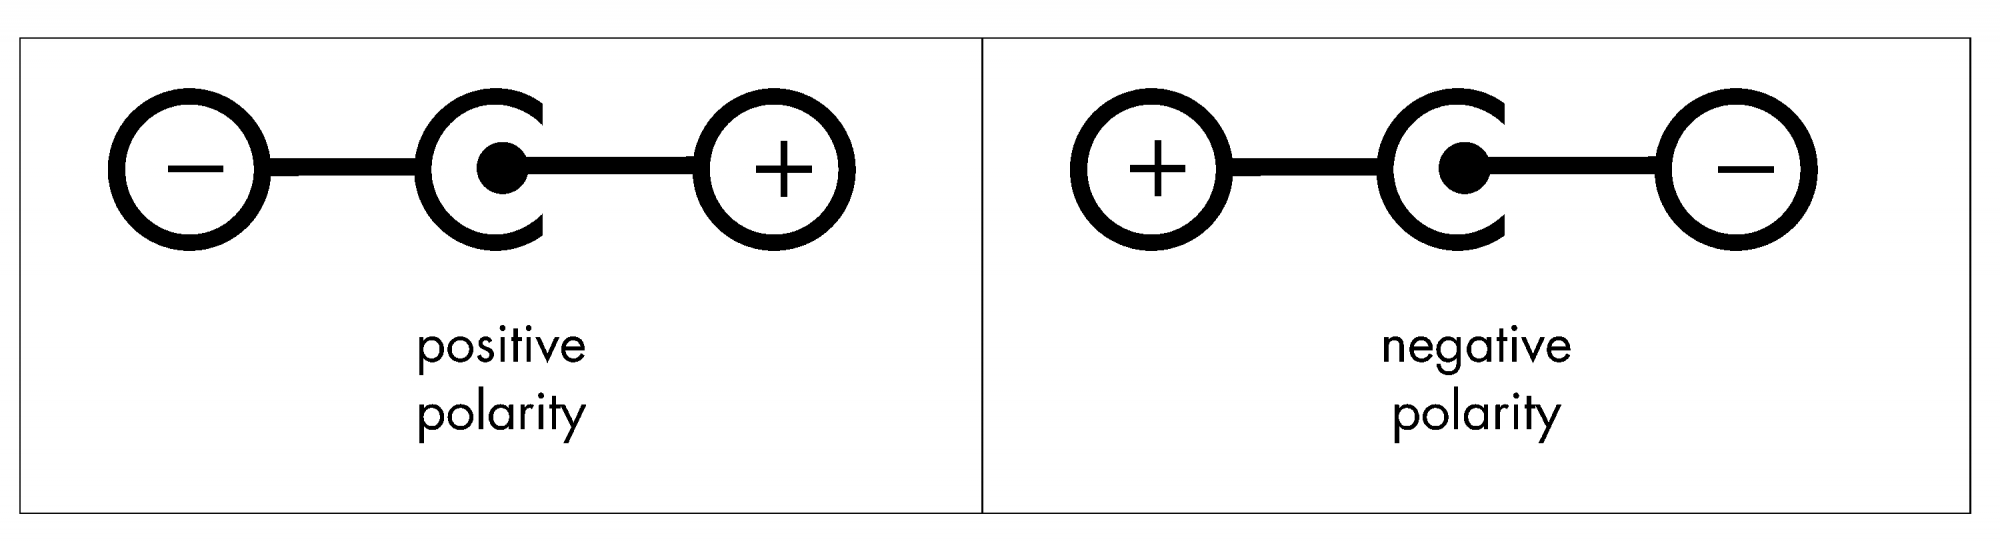 Coaxial DC Jack Polarity.png